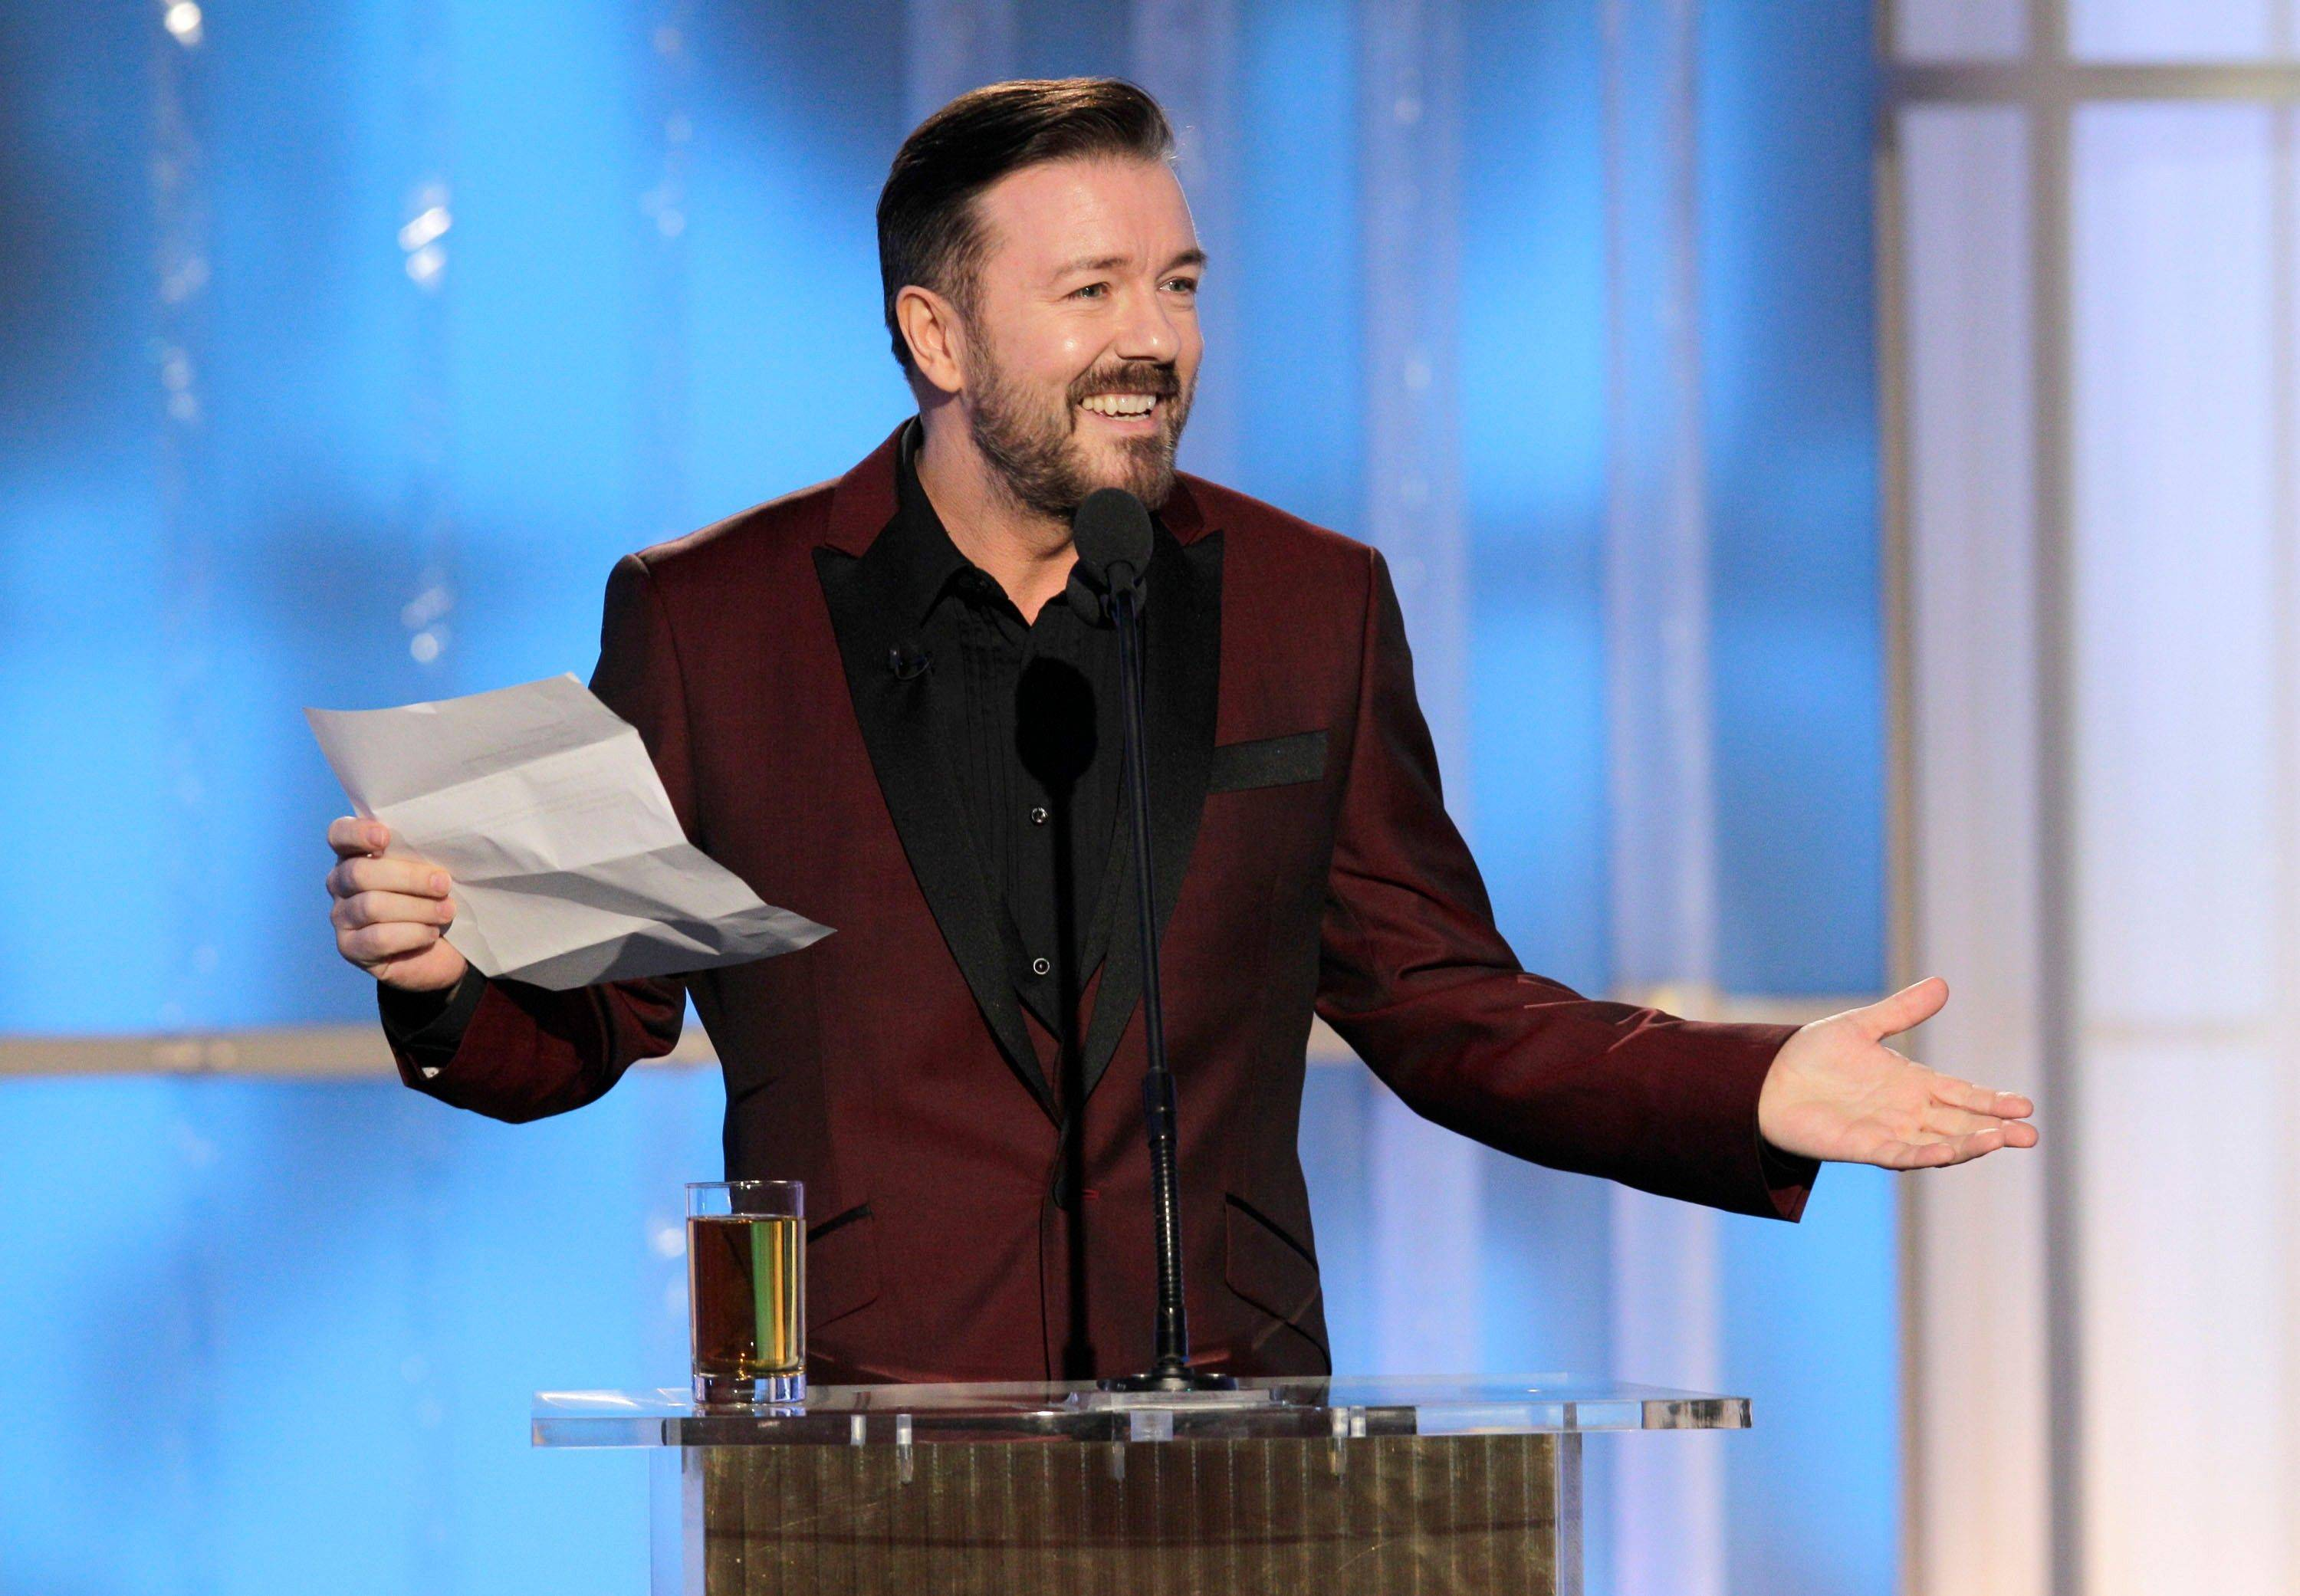 In this image released by NBC, host Ricky Gervais speaks during the 69th Annual Golden Globe Awards, Sunday, Jan. 15, 2012 in Los Angeles.